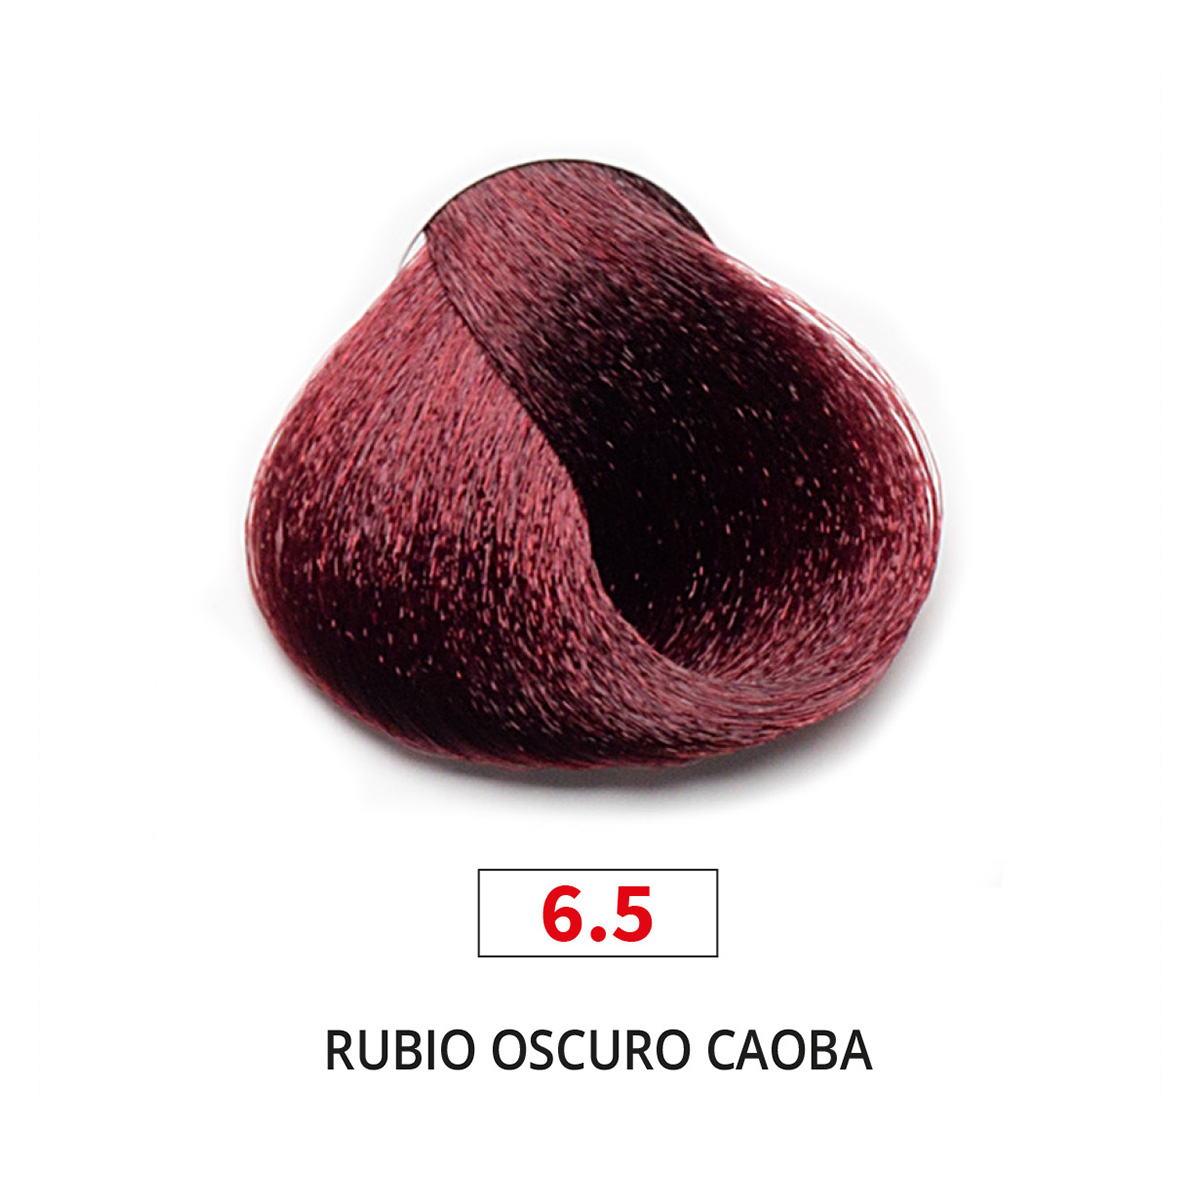 Caoba 6.5 - Yanguas Professional